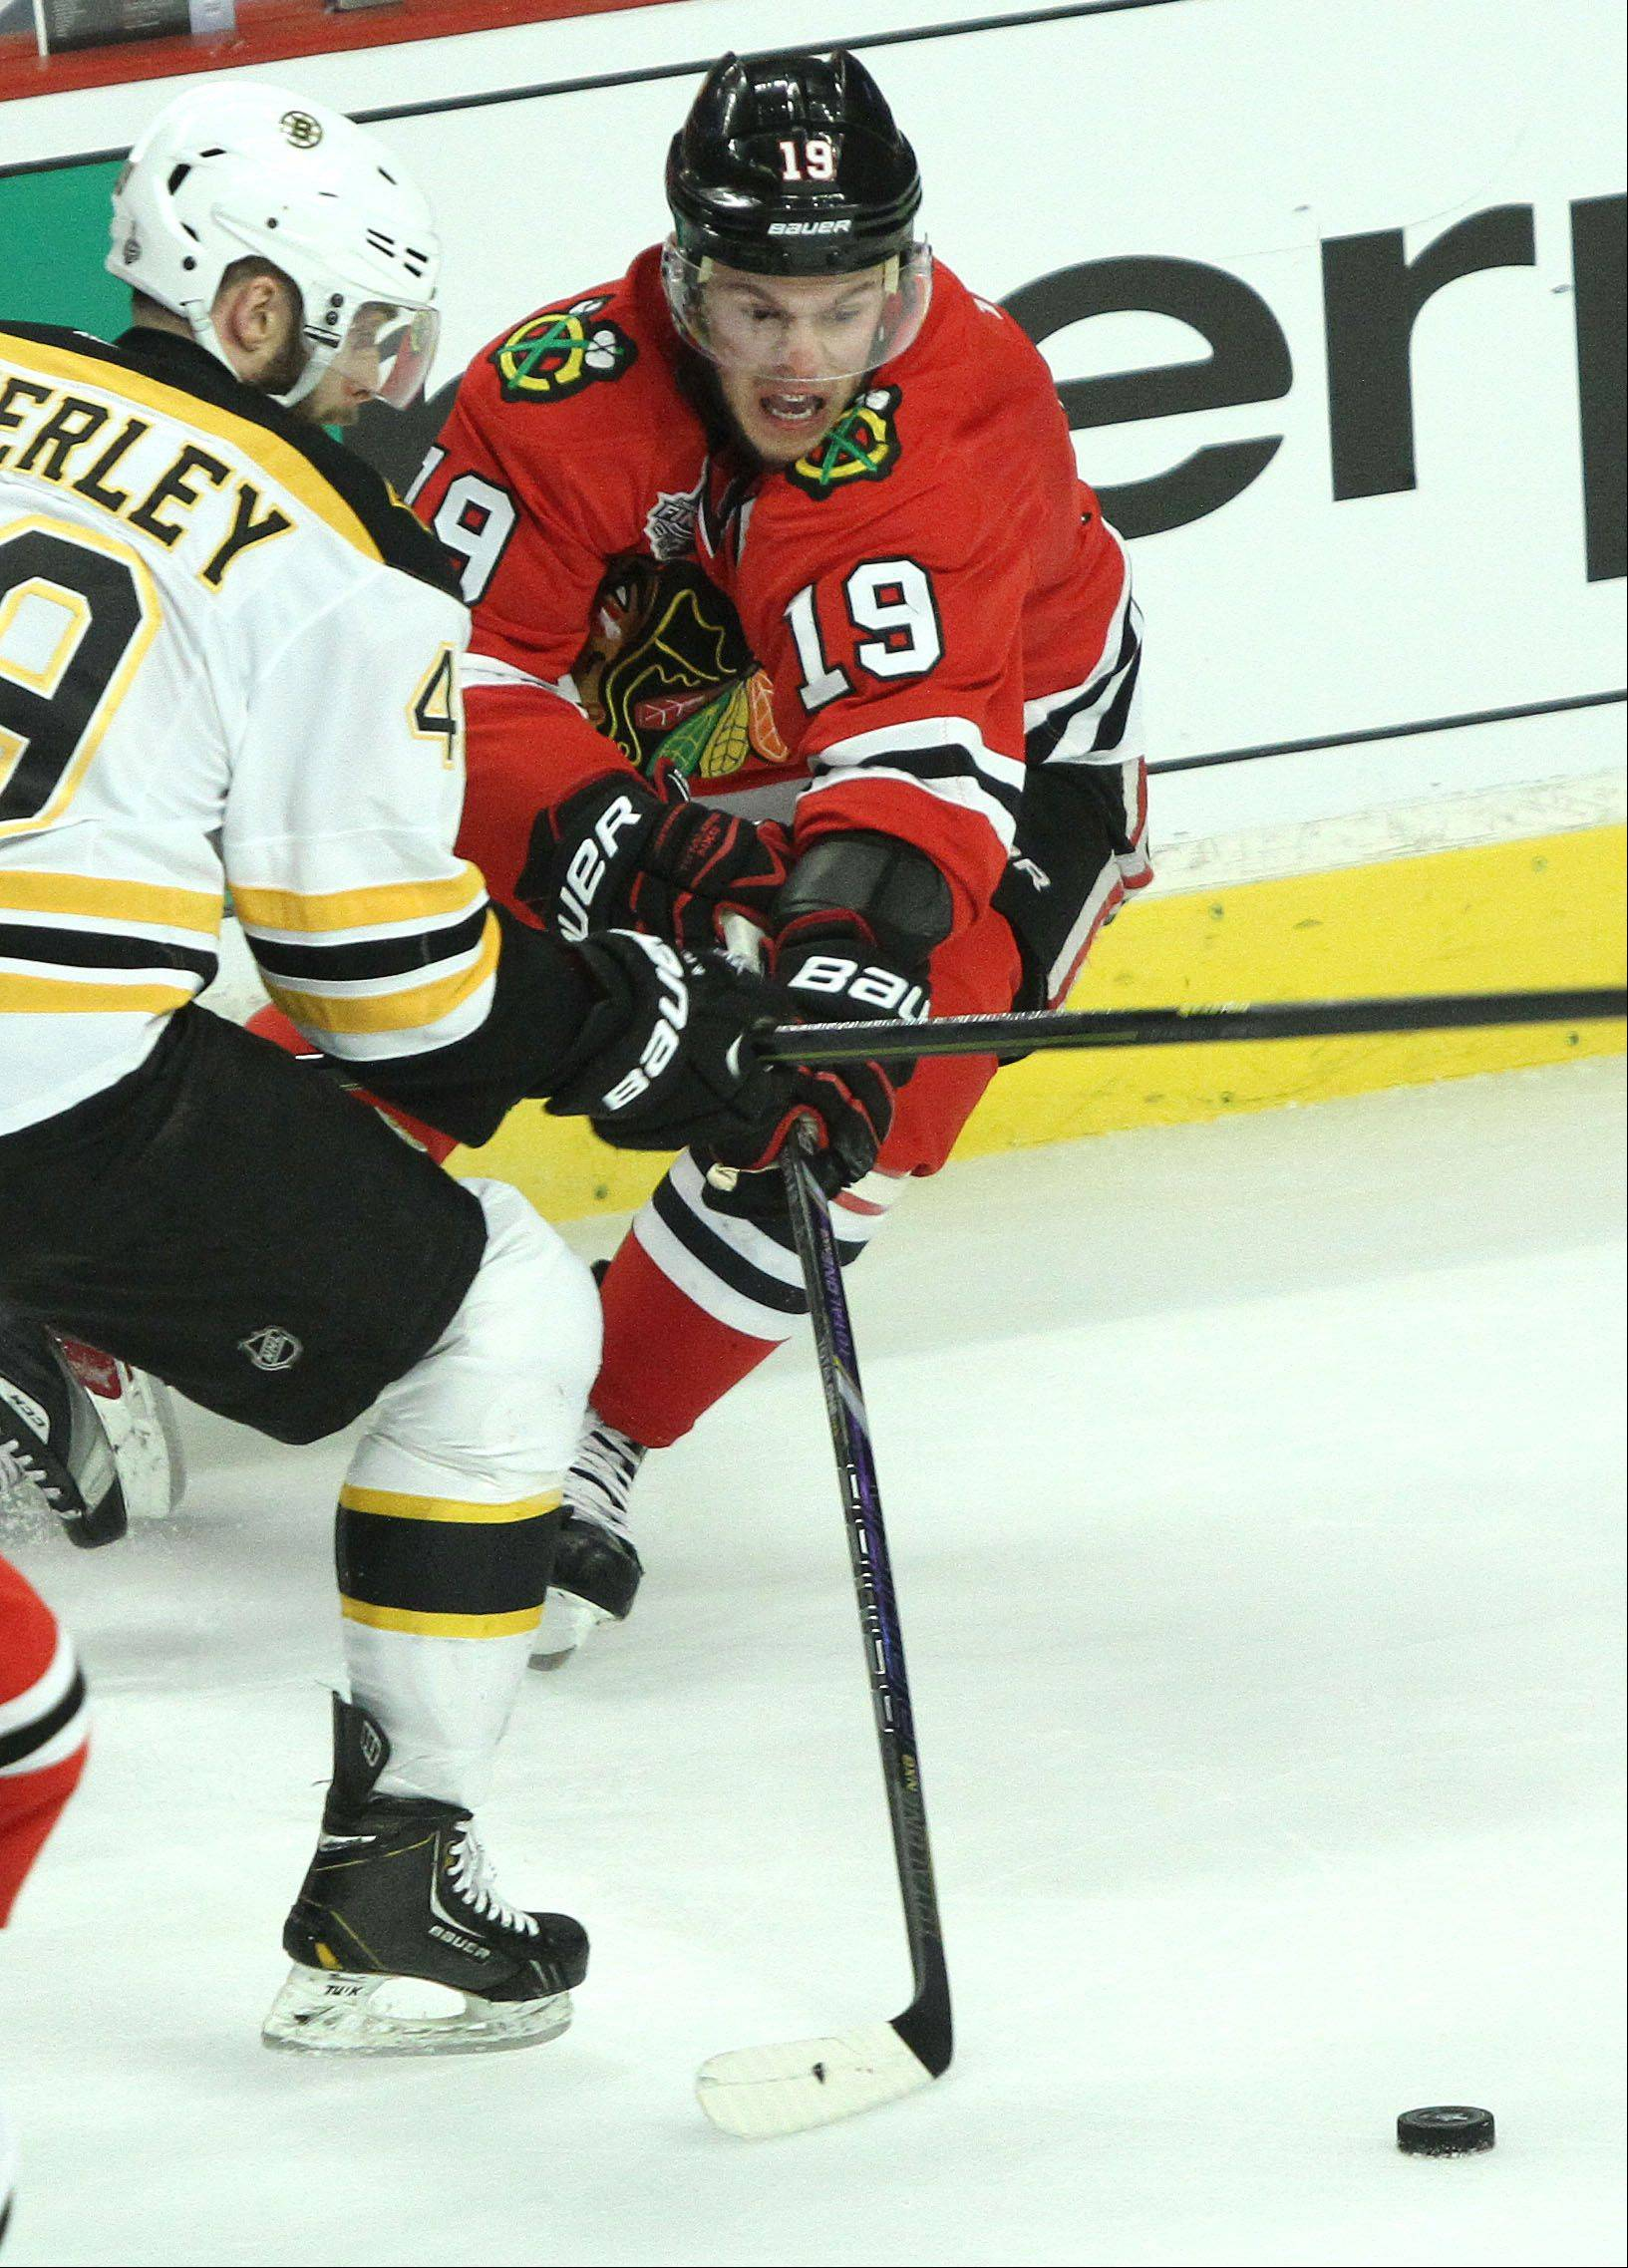 Chicago Blackhawks center Jonathan Toews battles with Boston Bruins center Rich Peverley during game 2 of the Stanley Cup Finals against the Boston Bruins at the United Center in Chicago Saturday.